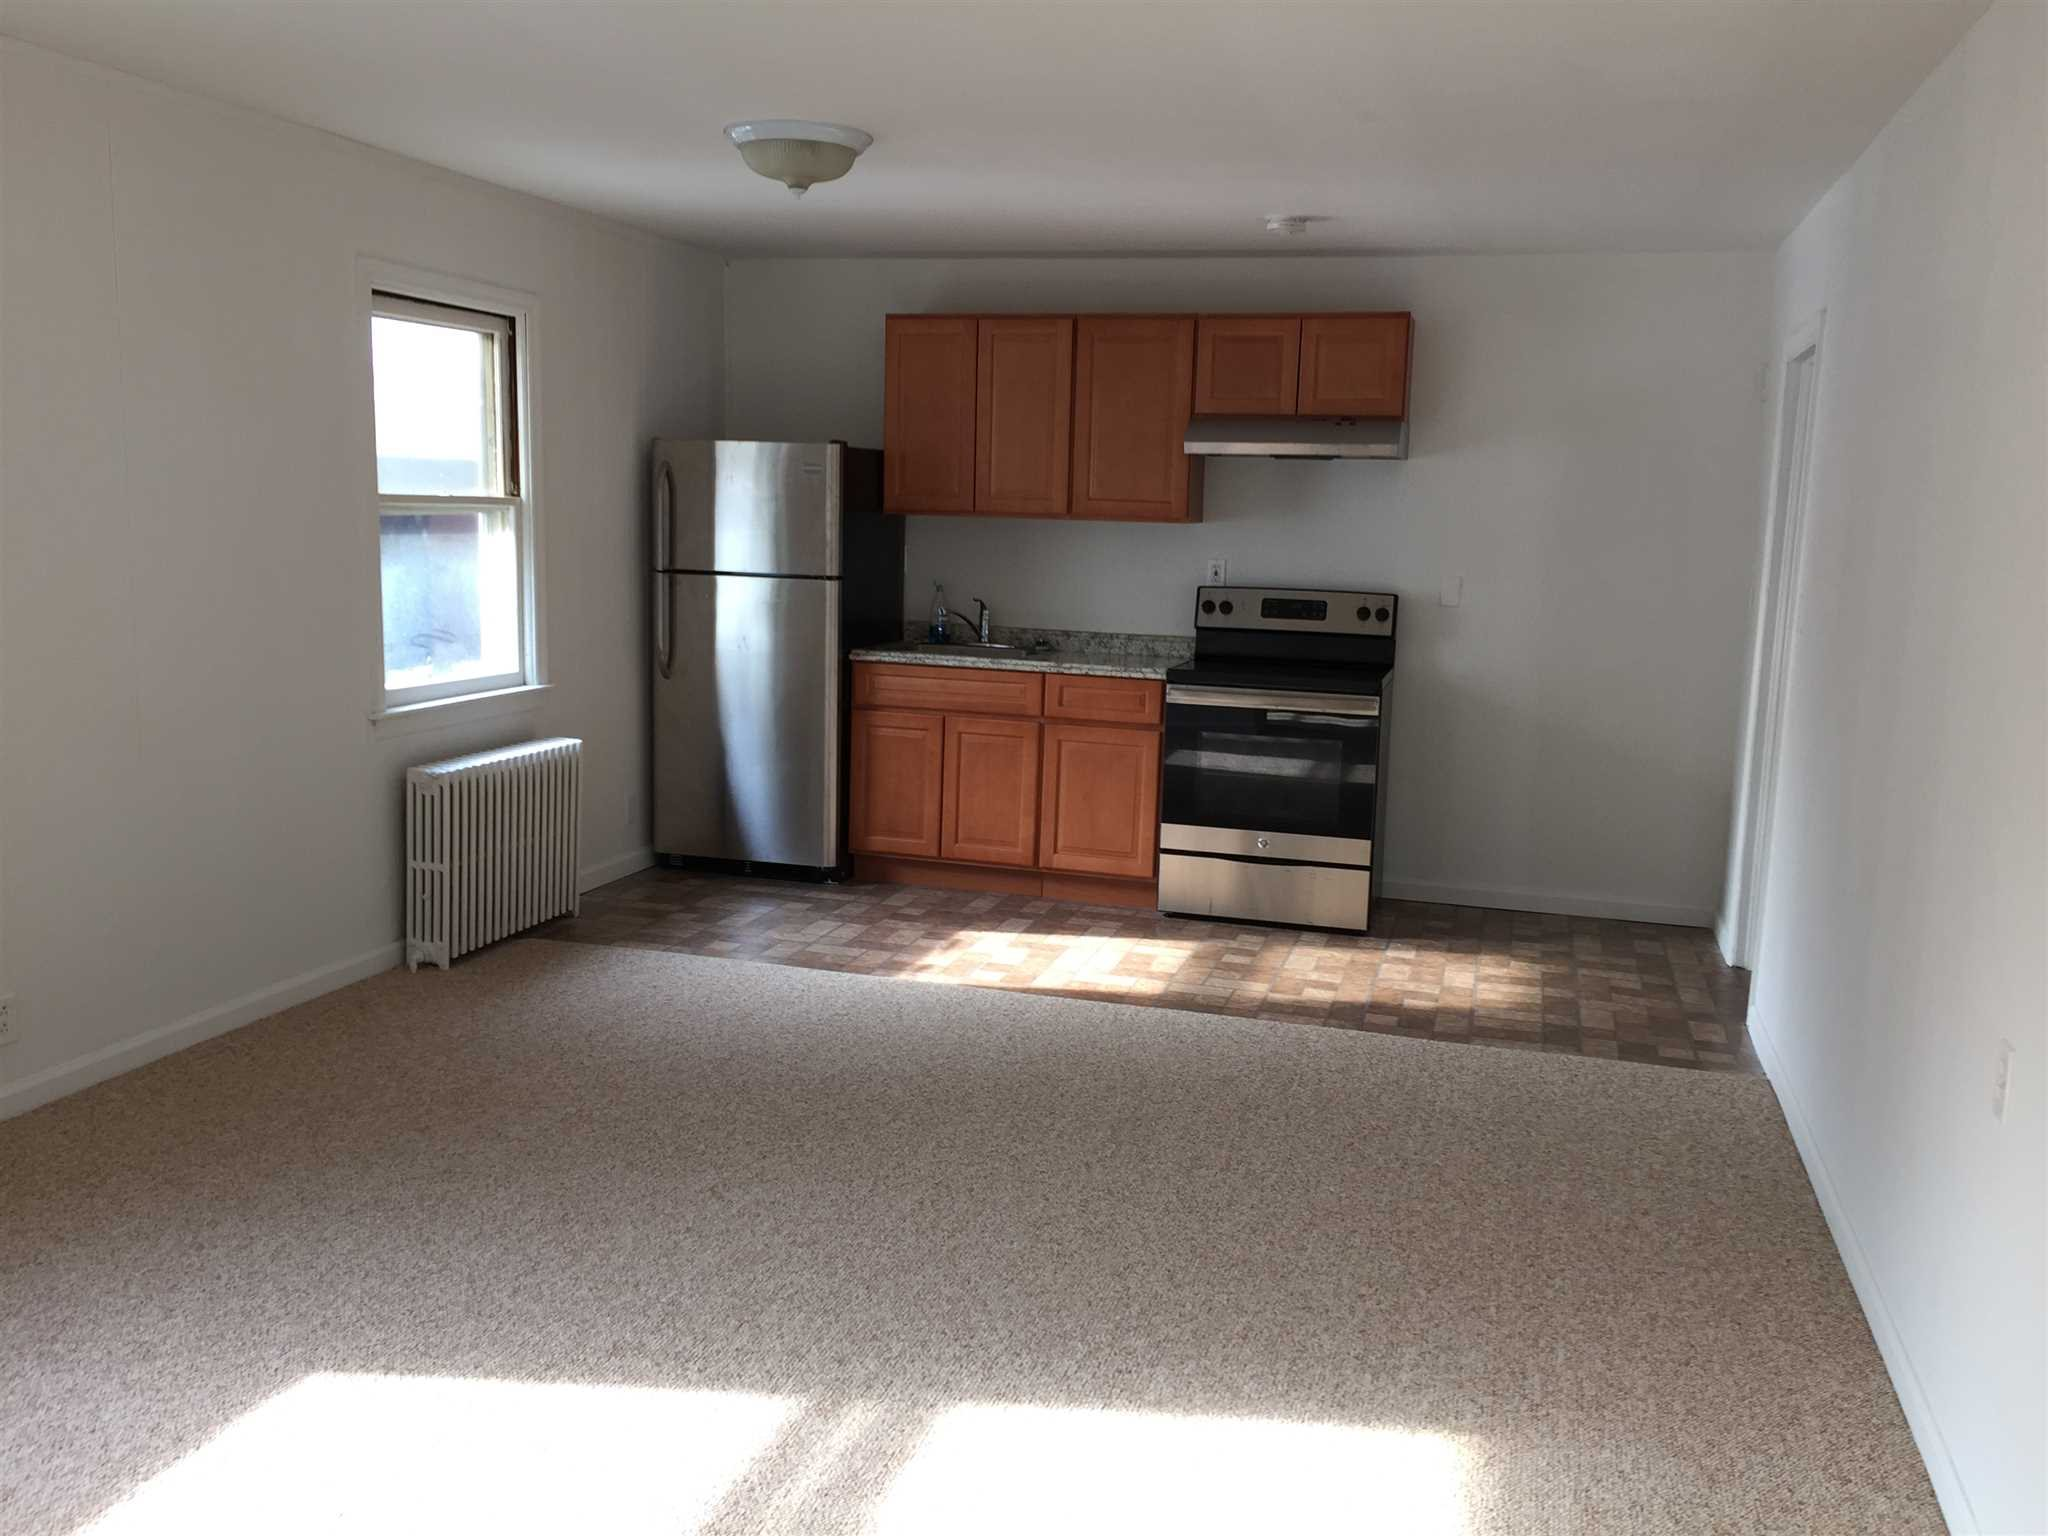 Single Family Home for Rent at 4332 ALBANY POST #2 Road 4332 ALBANY POST #2 Road Hyde Park, New York 12538 United States